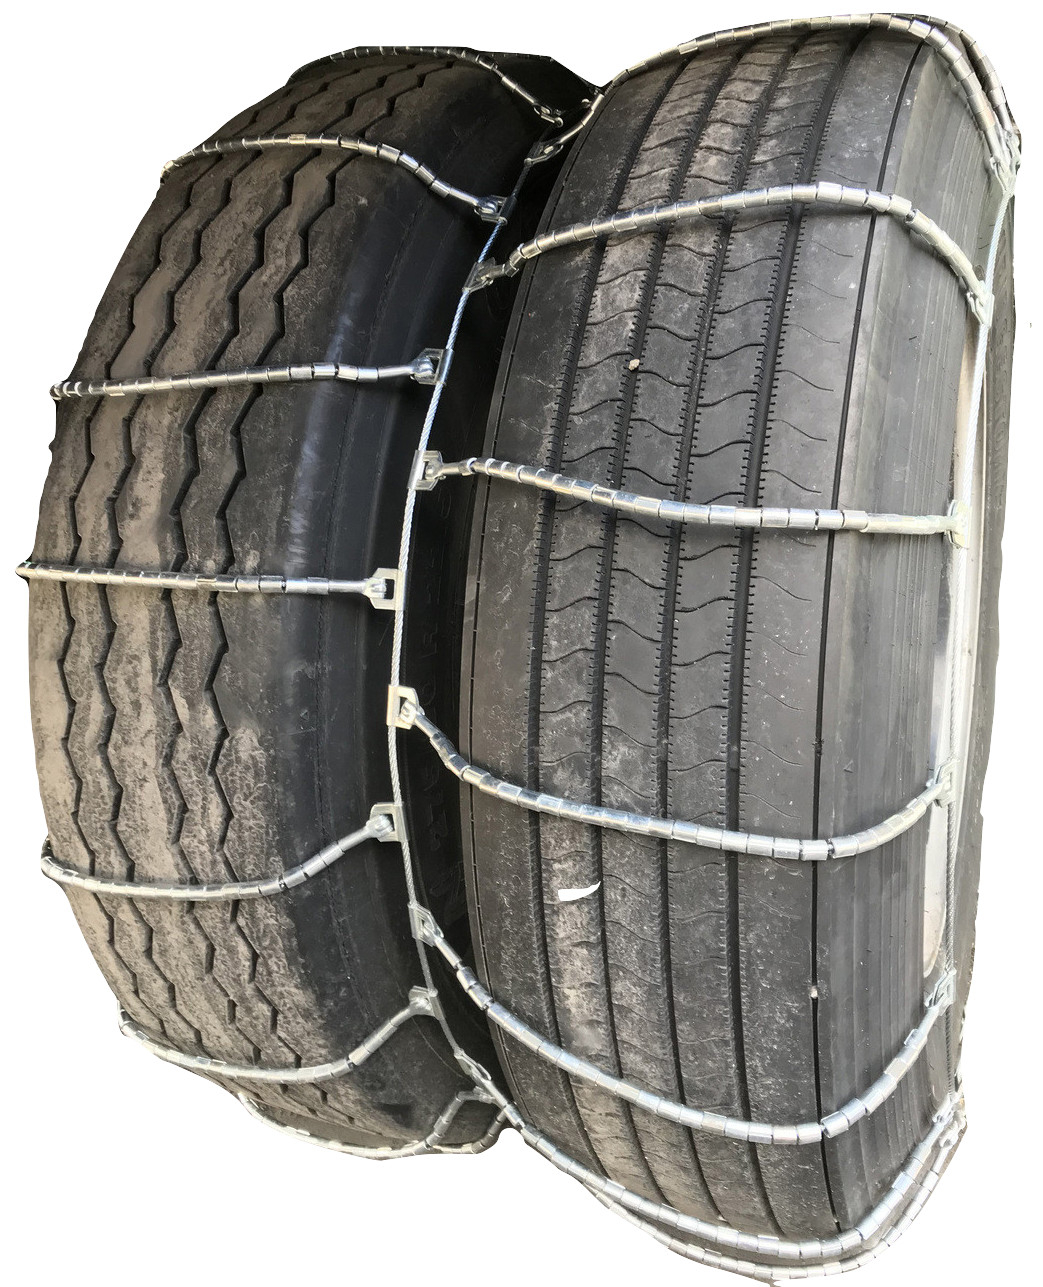 37X12.50 16.5 Cable Tire Chains with Cam Set of 2 TireChain.com 37X12.50-16.5